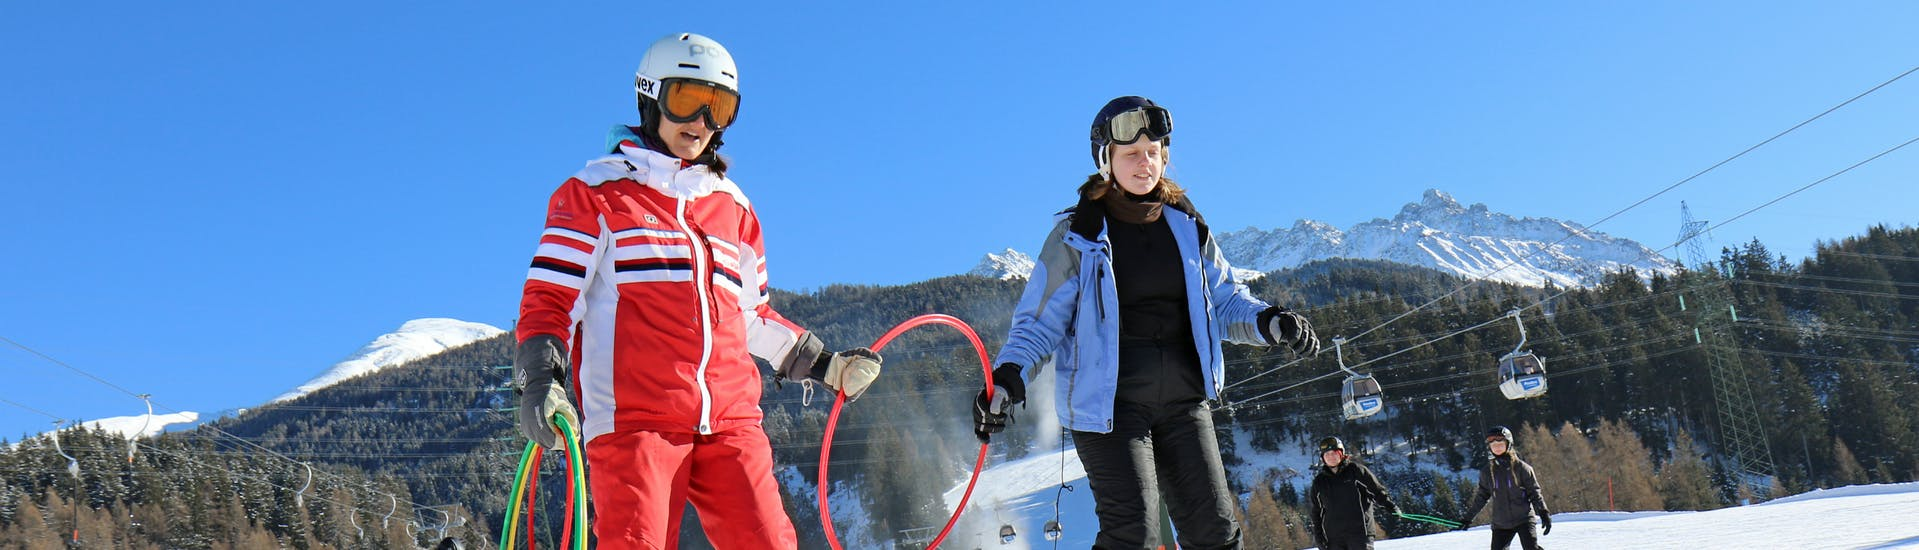 Private Ski Lessons for Adults in Serfaus-Fiss-Ladis with Skischule Pfunds - Hero image